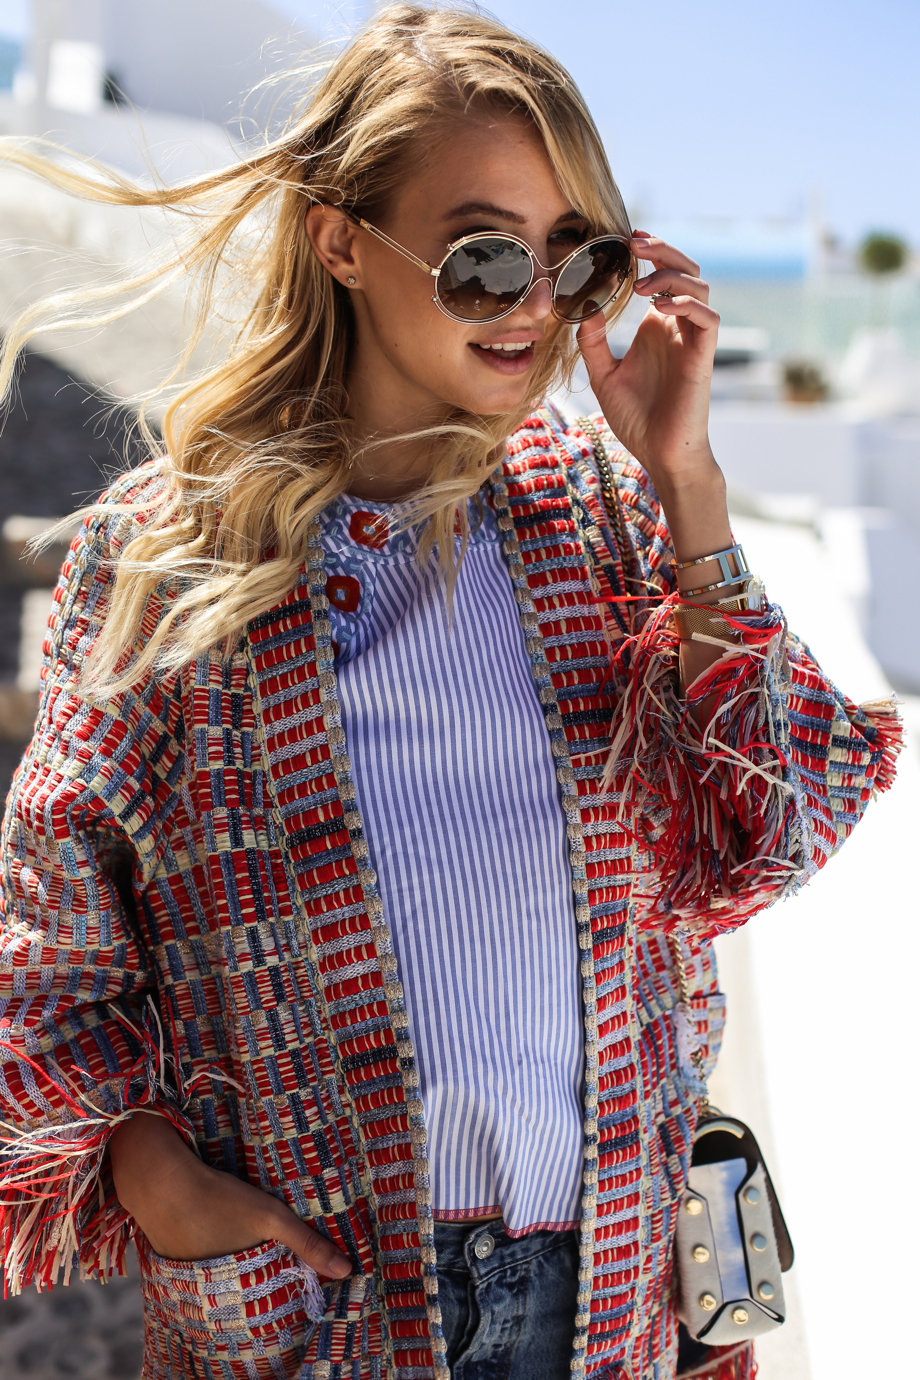 Stripes_Fringes_Levis_ToryBurch_ohhcouture_Santorini13